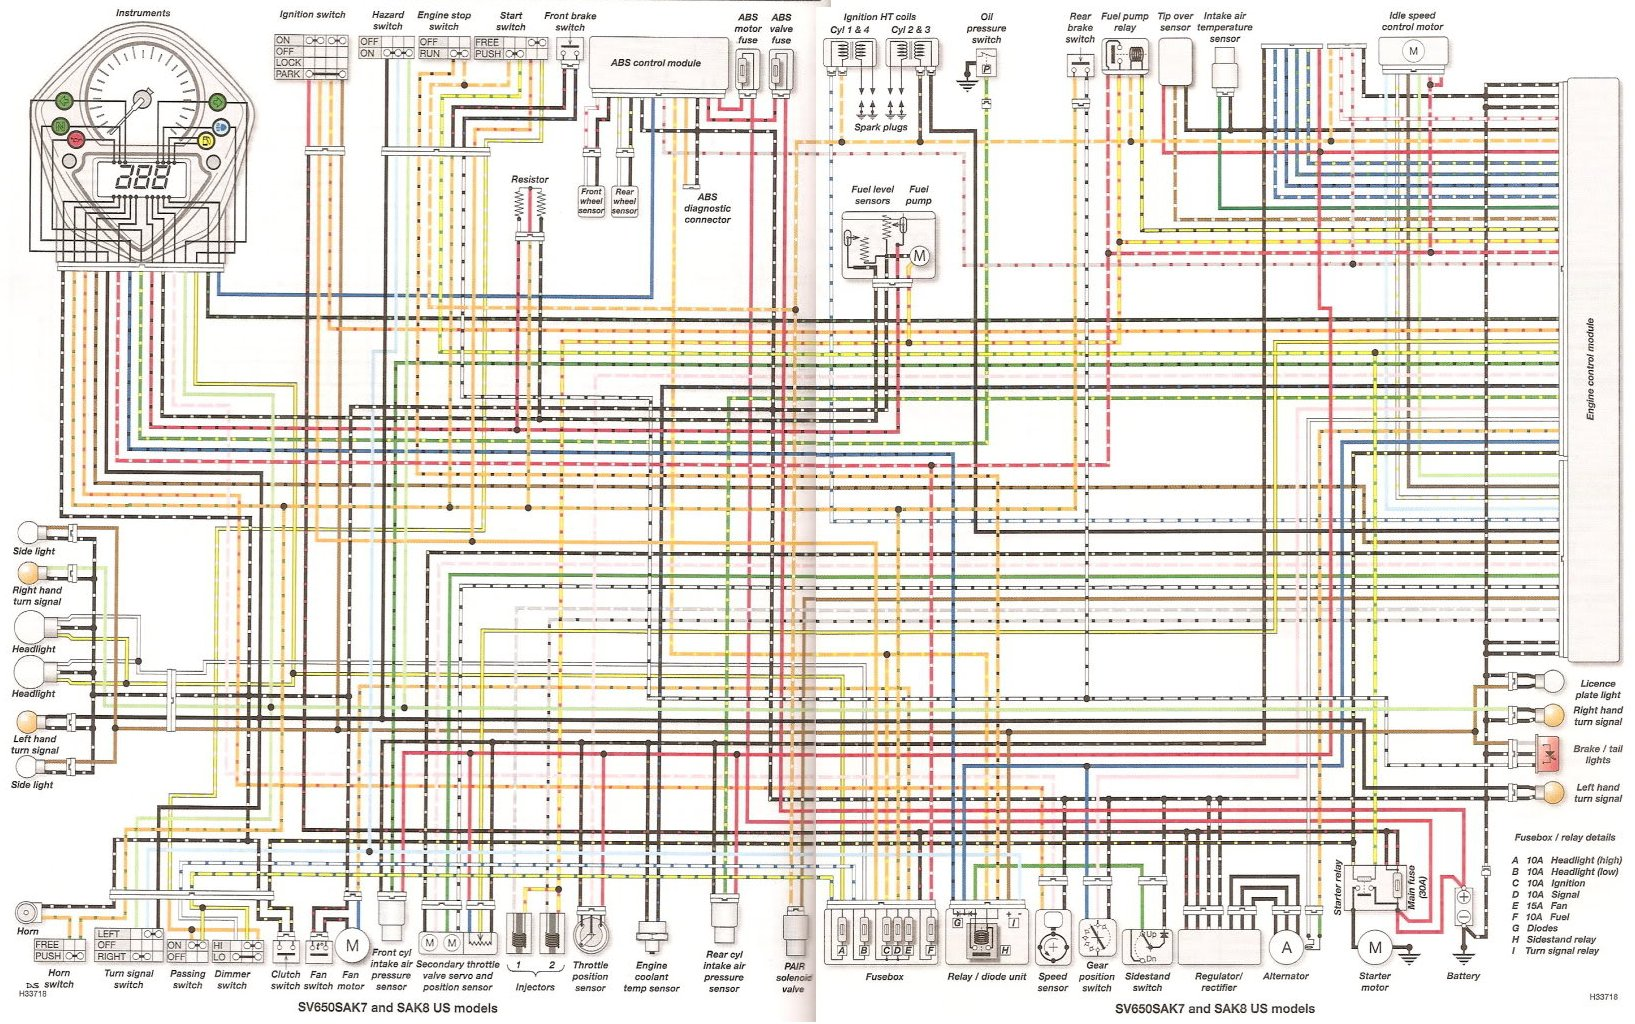 sv650 wiring diagram wiring diagram blogs cbr1000rr wiring diagram 2005 suzuki sv650s schematics wiring diagram [ 1635 x 1024 Pixel ]